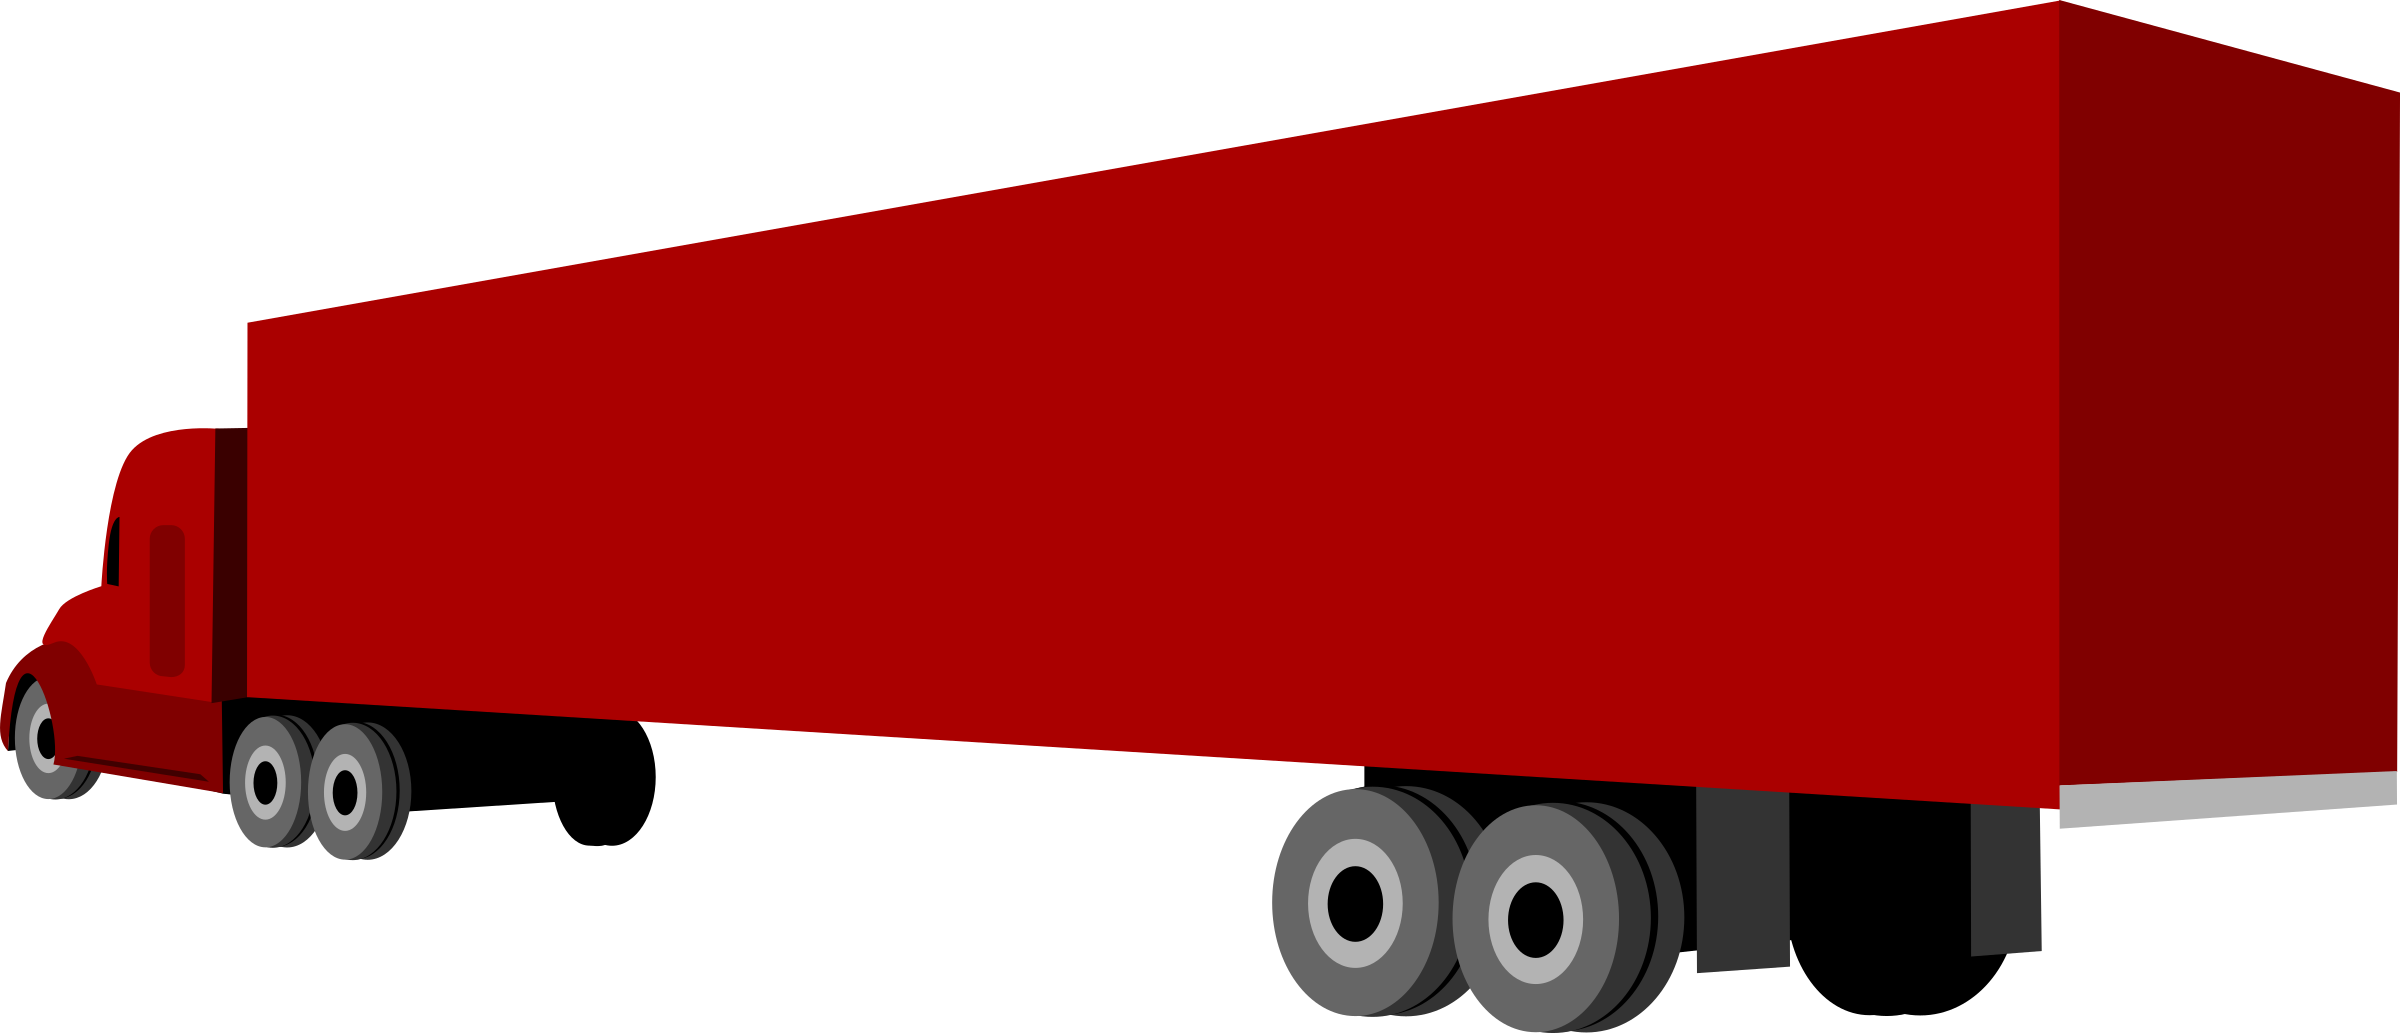 Truck and trailer by kebe